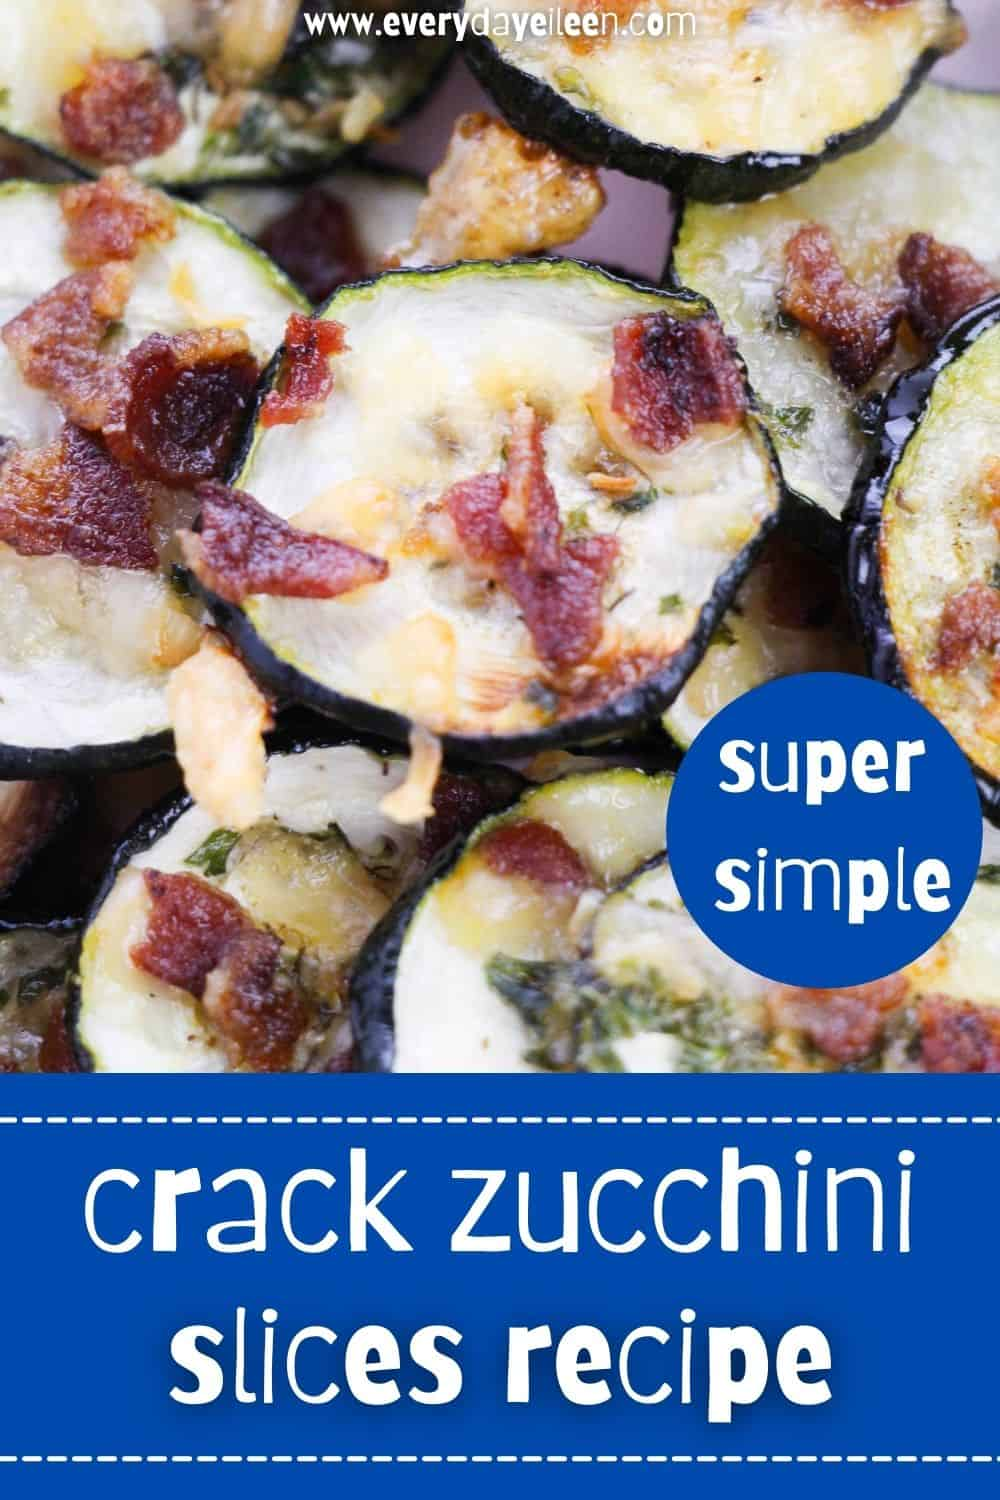 Enjoy Roasted Zucchini Slices that are crunchy and golden brown. Oven roasted and topped with Ranch seasoning, crispy bacon, and cheesy goodness from melted cheese.This is a low-carb snack or side dish. Serve with dip for a great snack. Perfect for game day, Holidays, family gatherings. via @everydayeileen